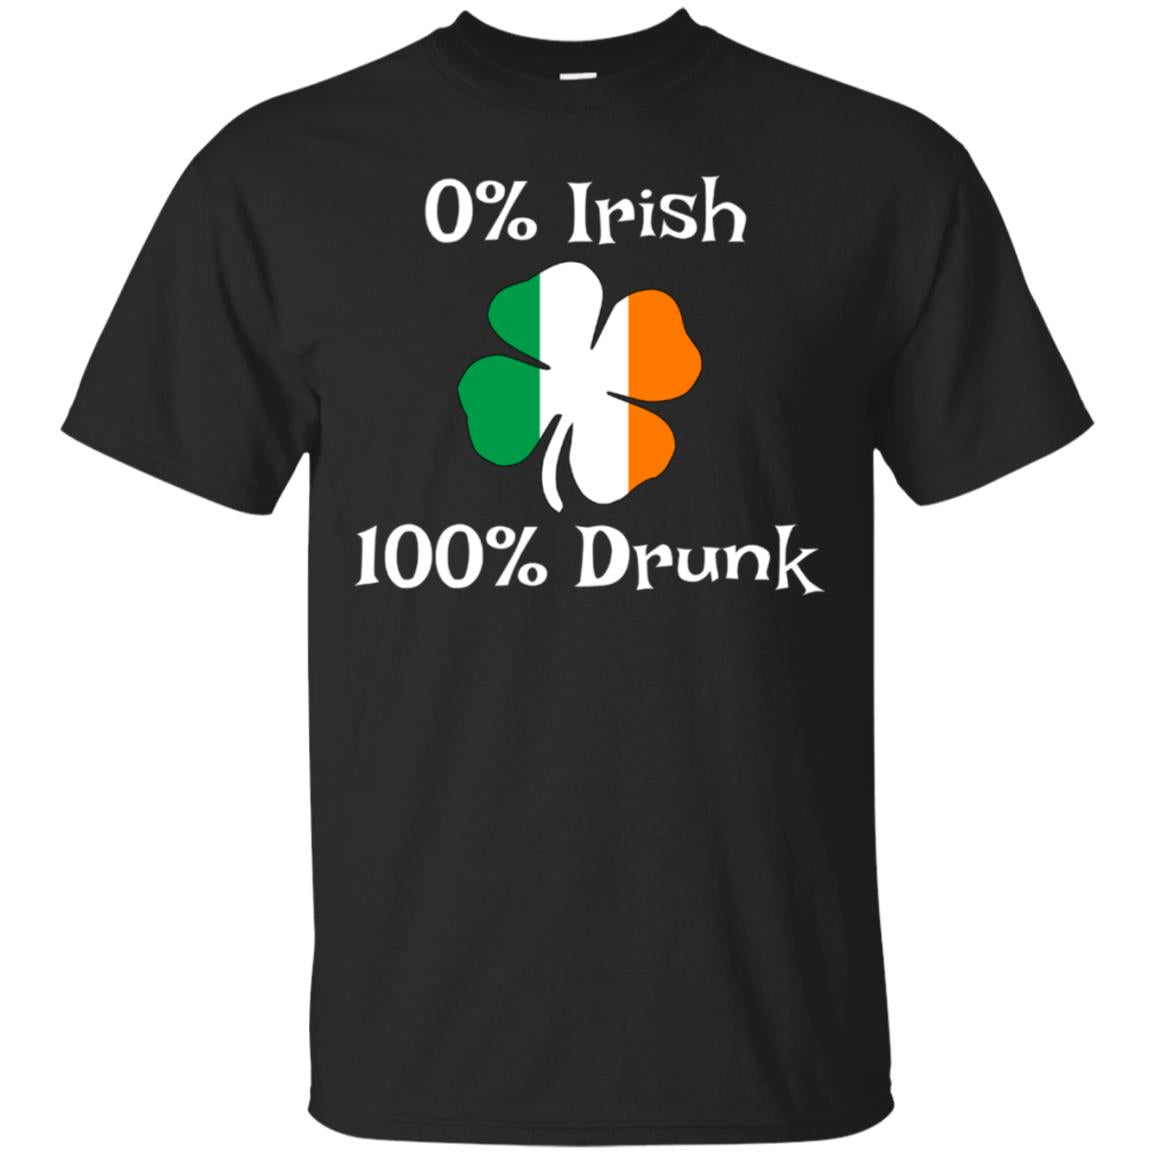 0% Irish 100% Drunk Funny Irish Beer Crawl Shirt 99promocode